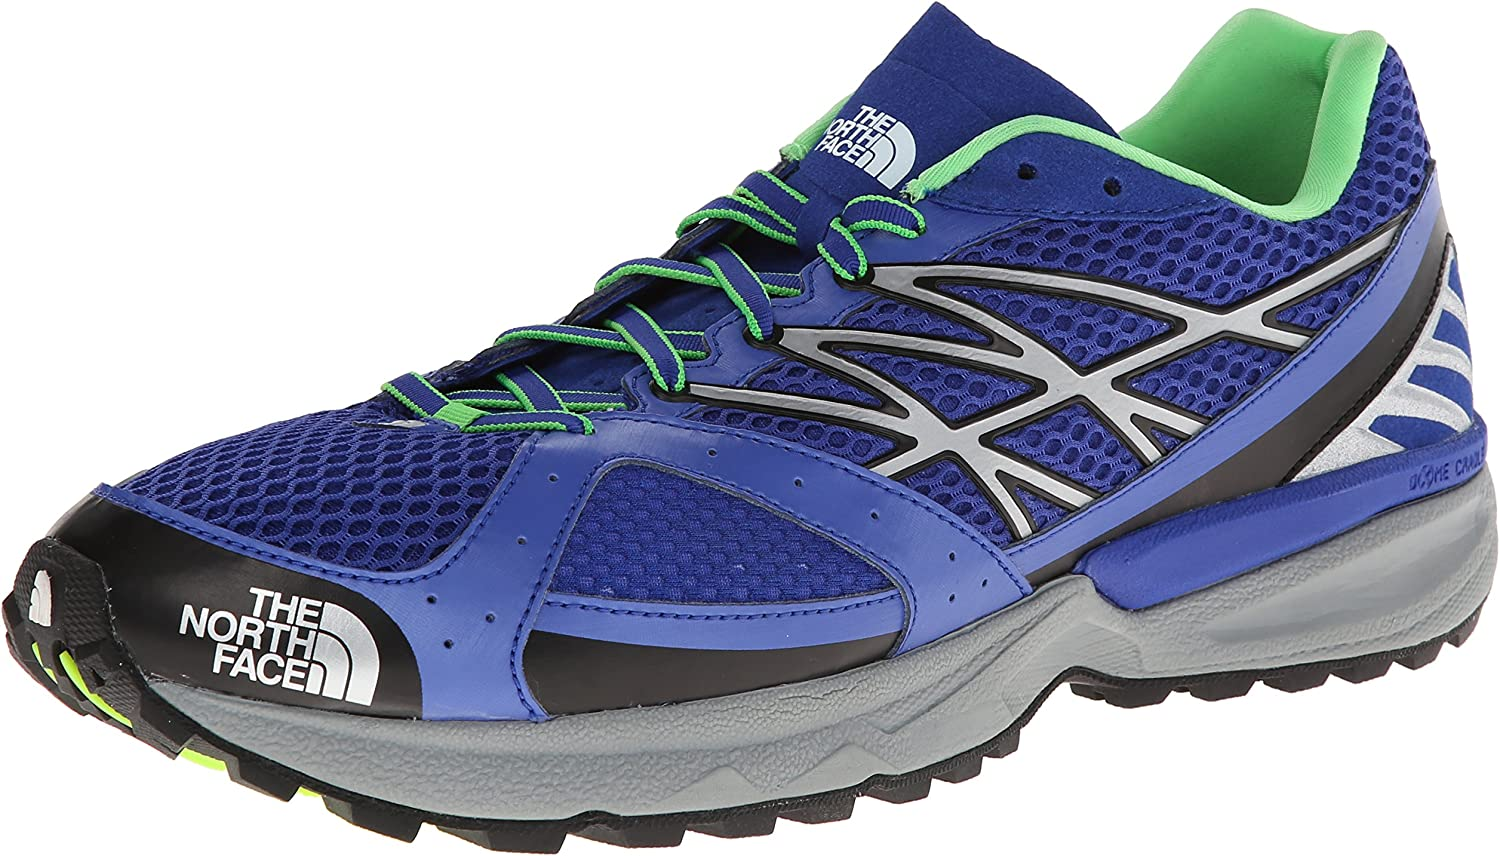 THE NORTH FACE TNF GTD TRAIL SHOE MEN blueE GREEN